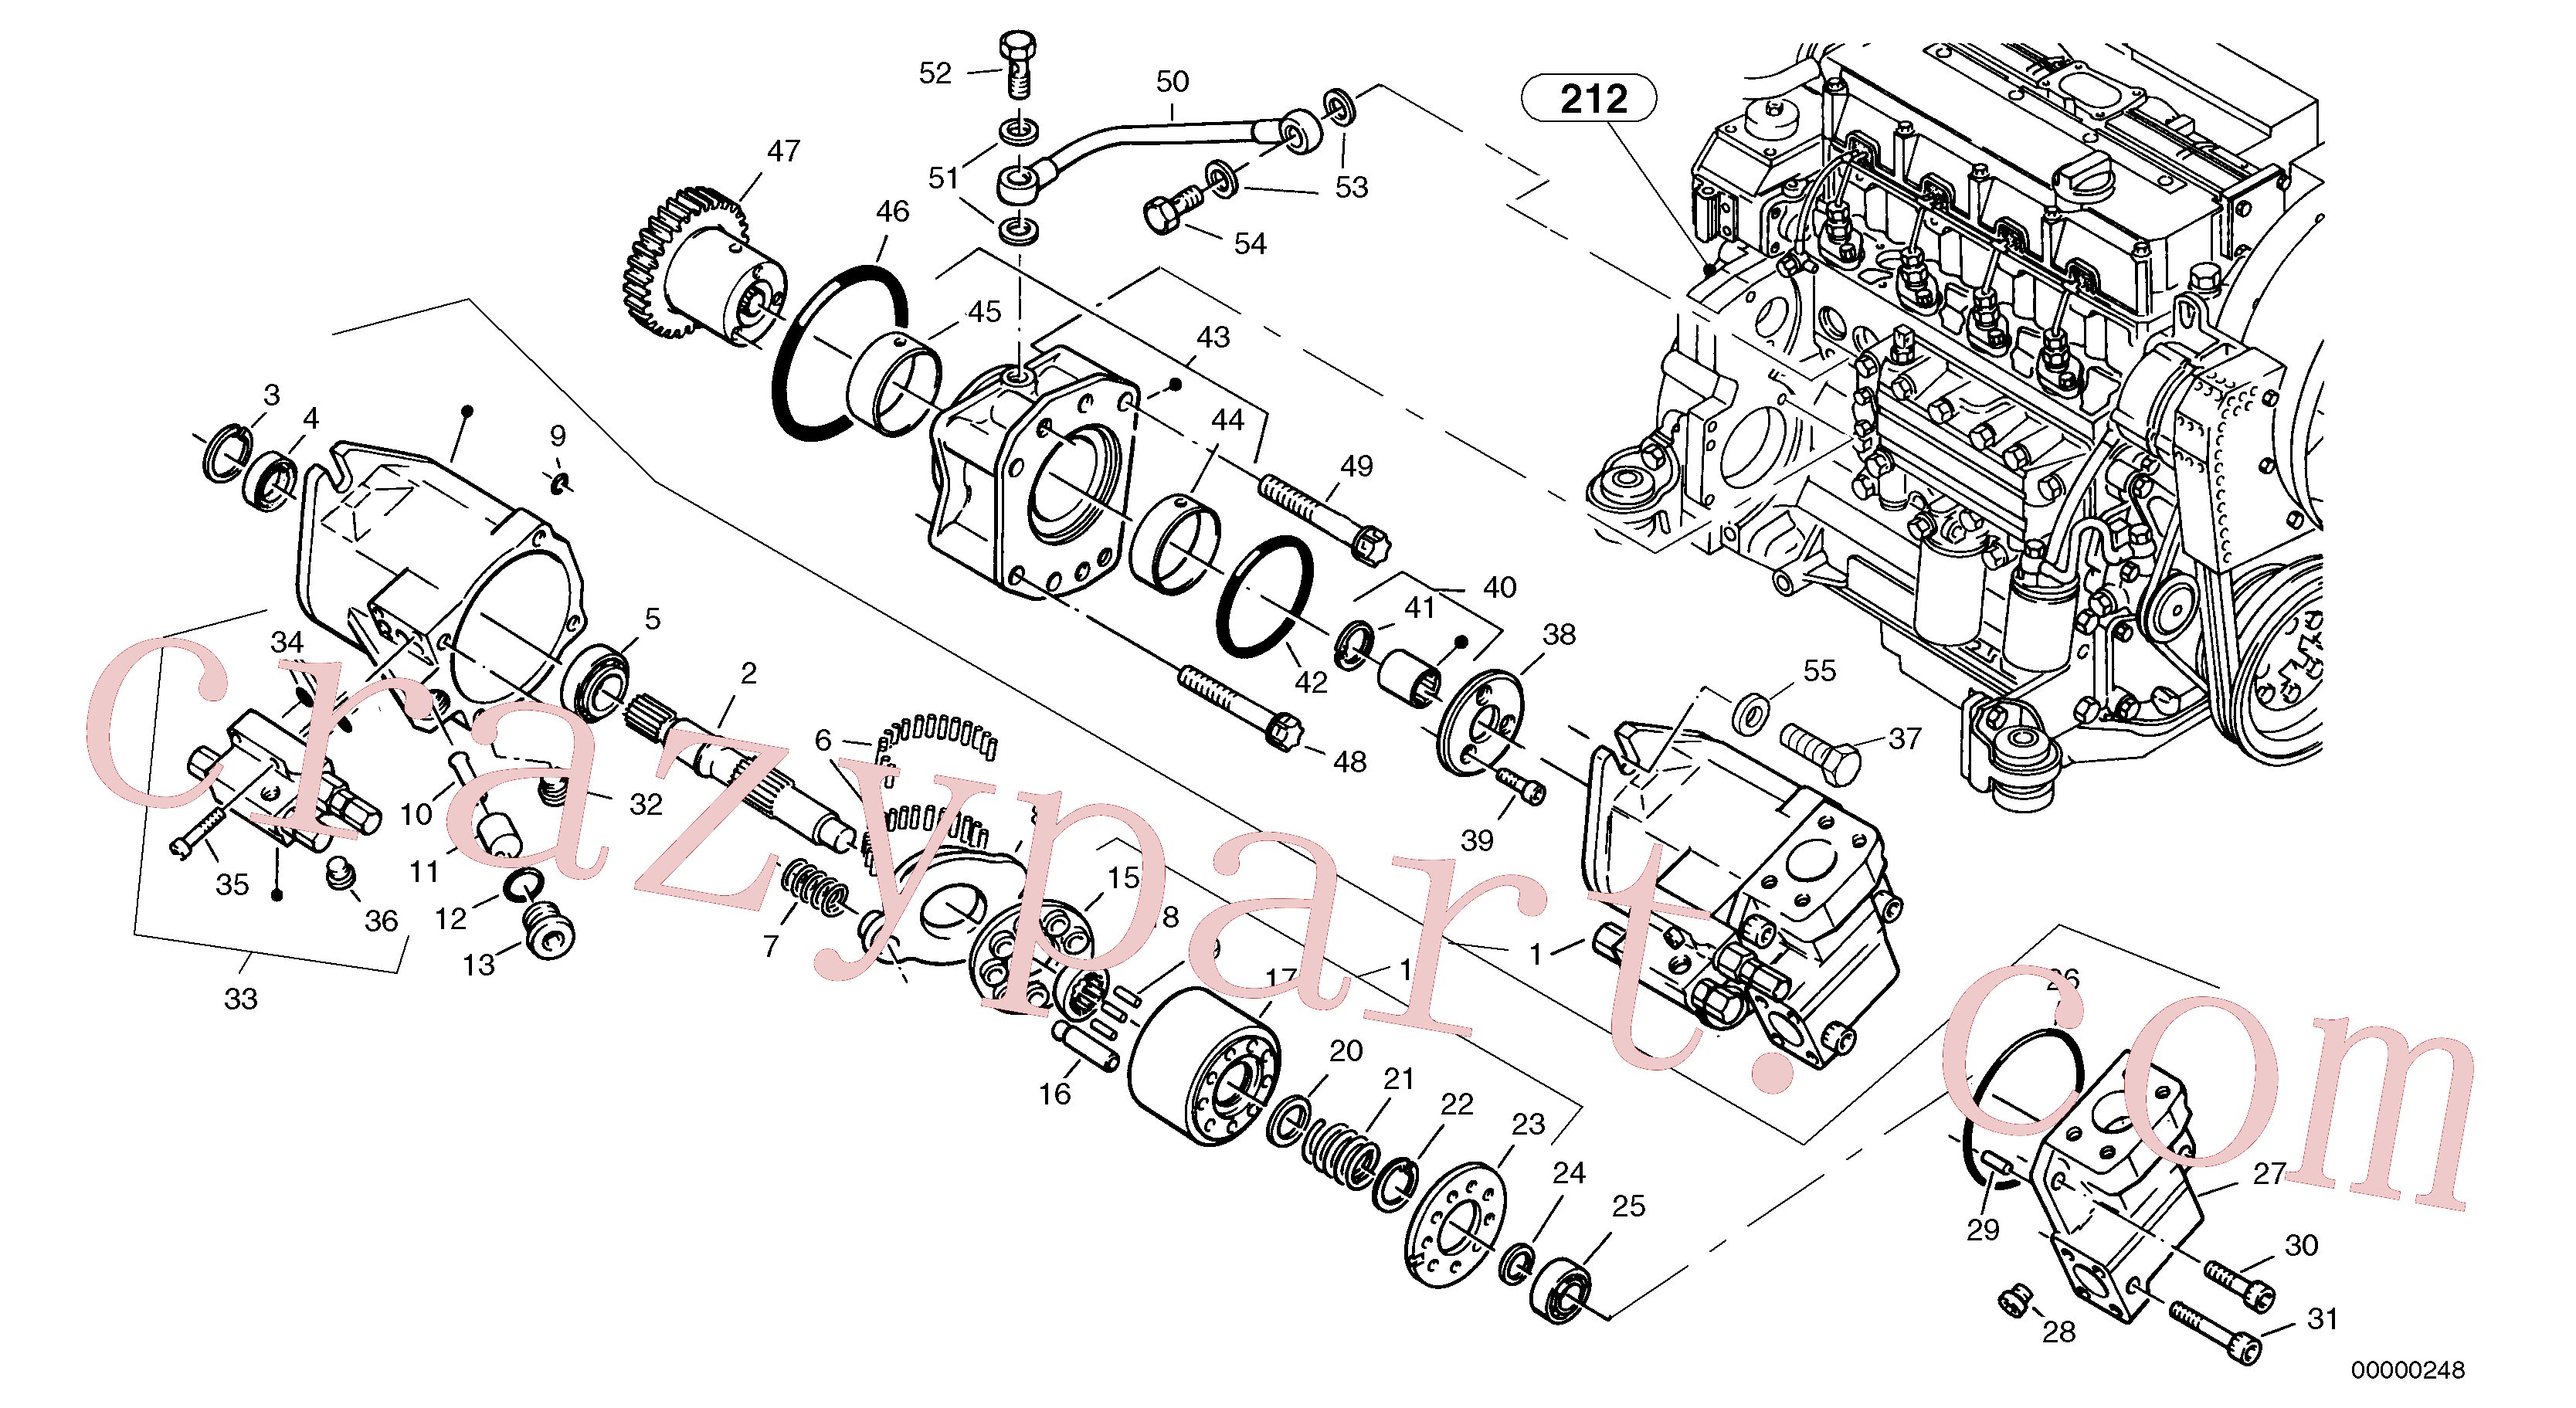 ZM2900650 for Volvo Stop block for wheel, Pump - working hydraulic(00000248 assembly)